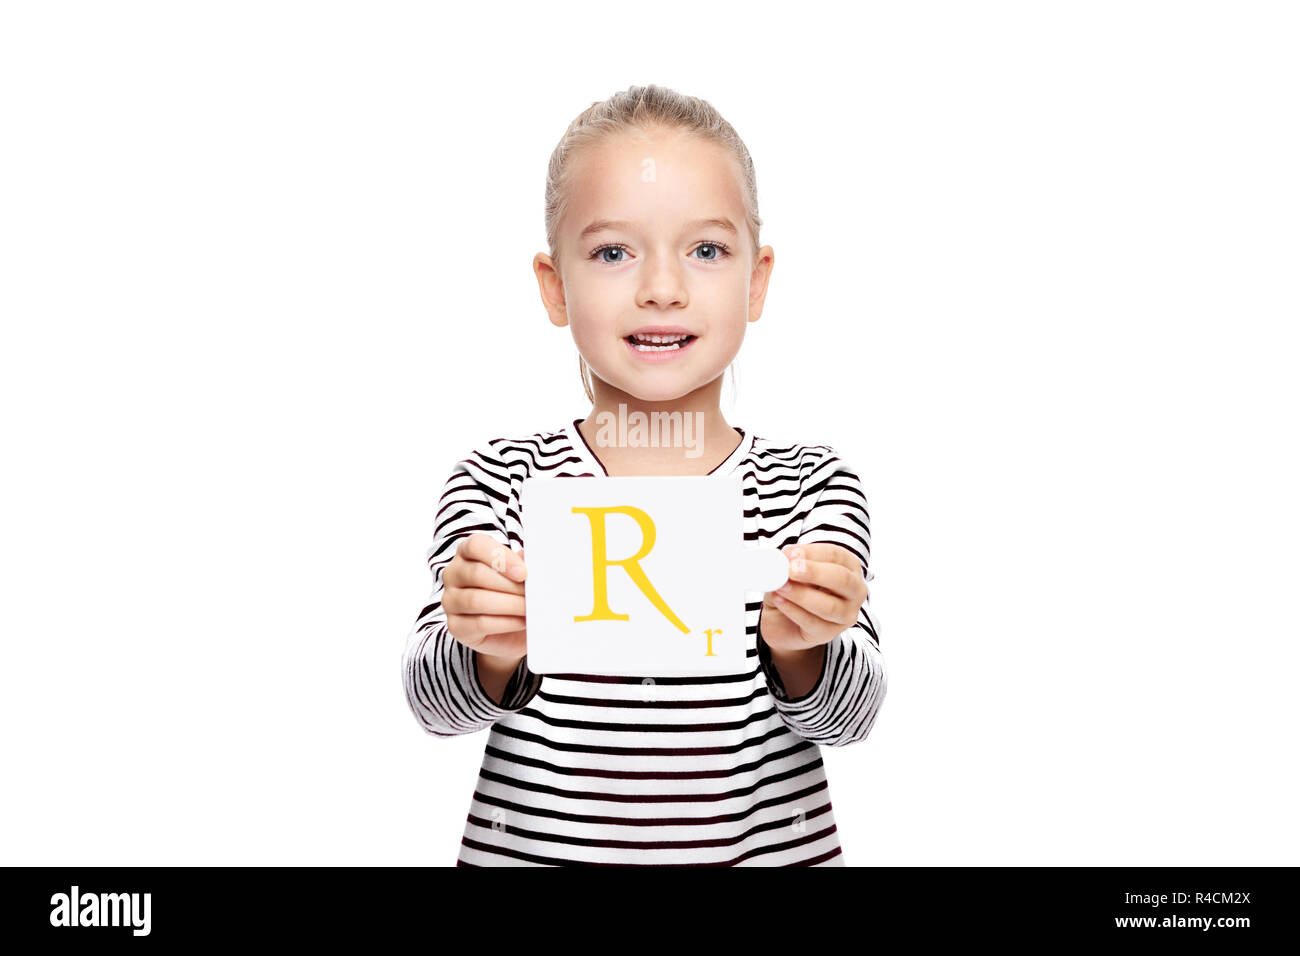 Young girl holding a card with letter R. Speech therapy concept on white background. Correct pronounciation and articulation at preschool age. - Stock Image